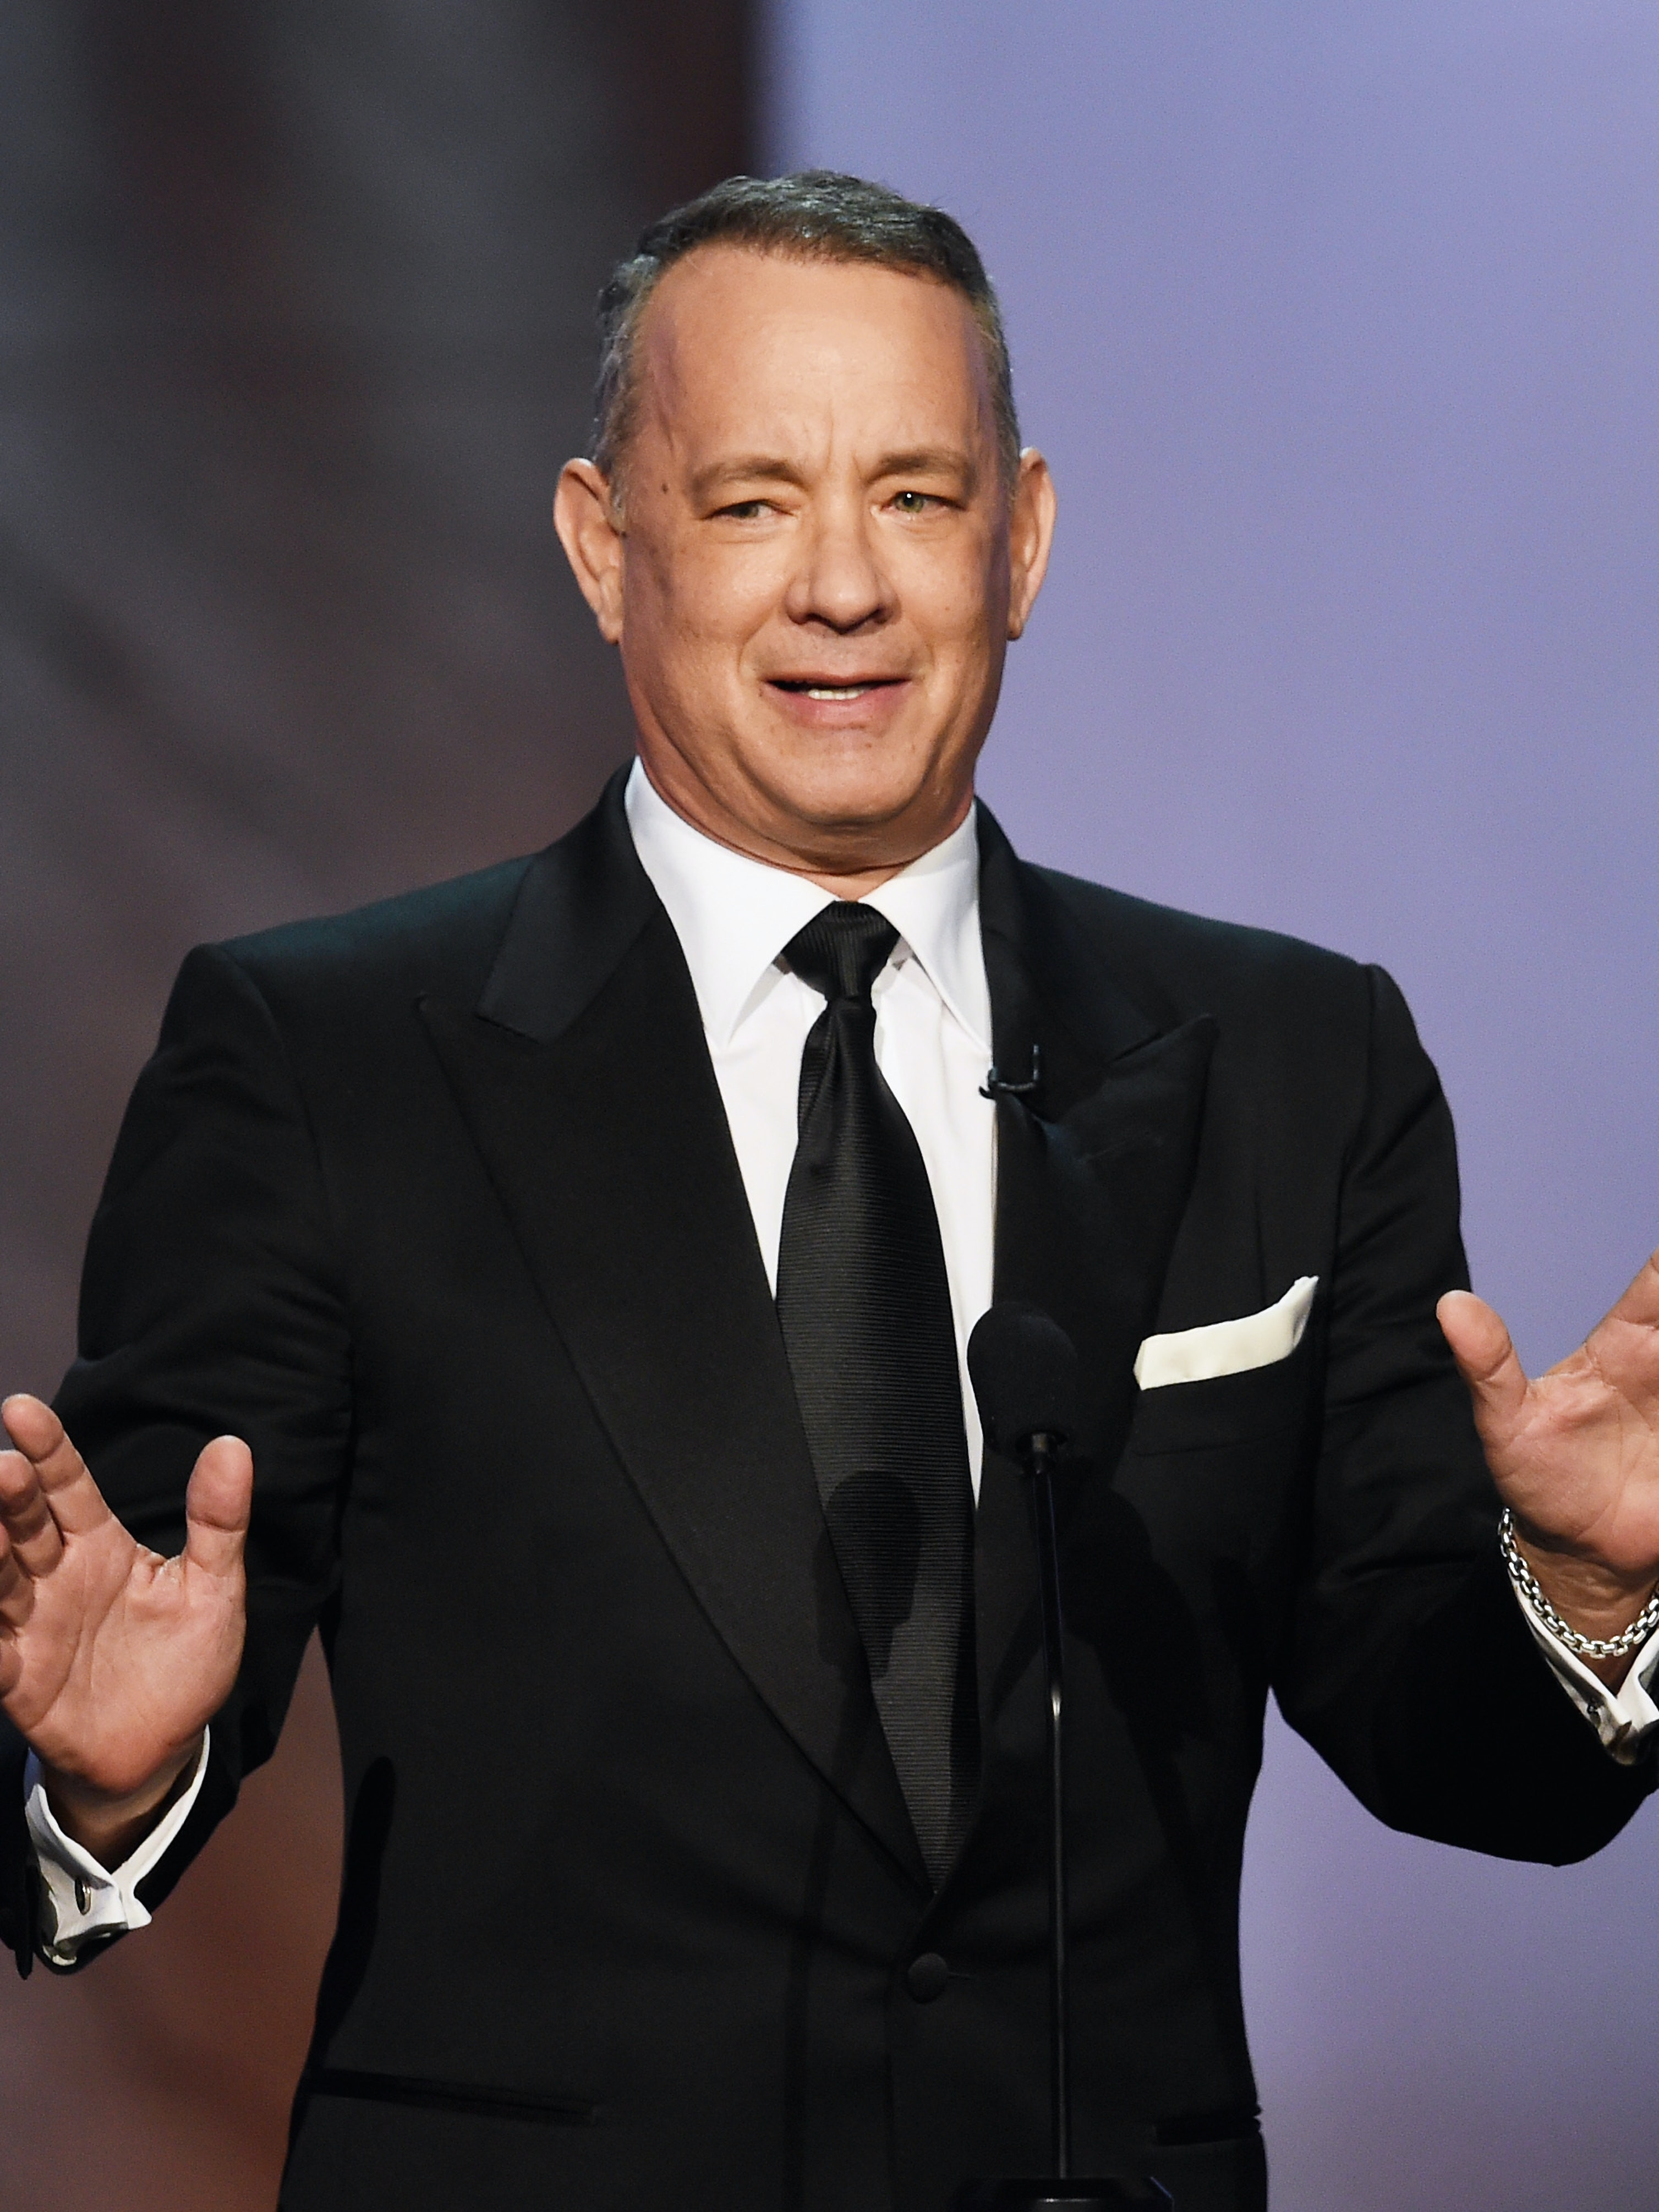 HOLLYWOOD, CA - JUNE 09:  Actor Tom Hanks speaks onstage during American Film Institute's 44th Life Achievement Award Gala Tribute to John Williams at Dolby Theatre on June 9, 2016 in Hollywood, California. 26148_004  (Photo by Kevin Winter/Getty Images )